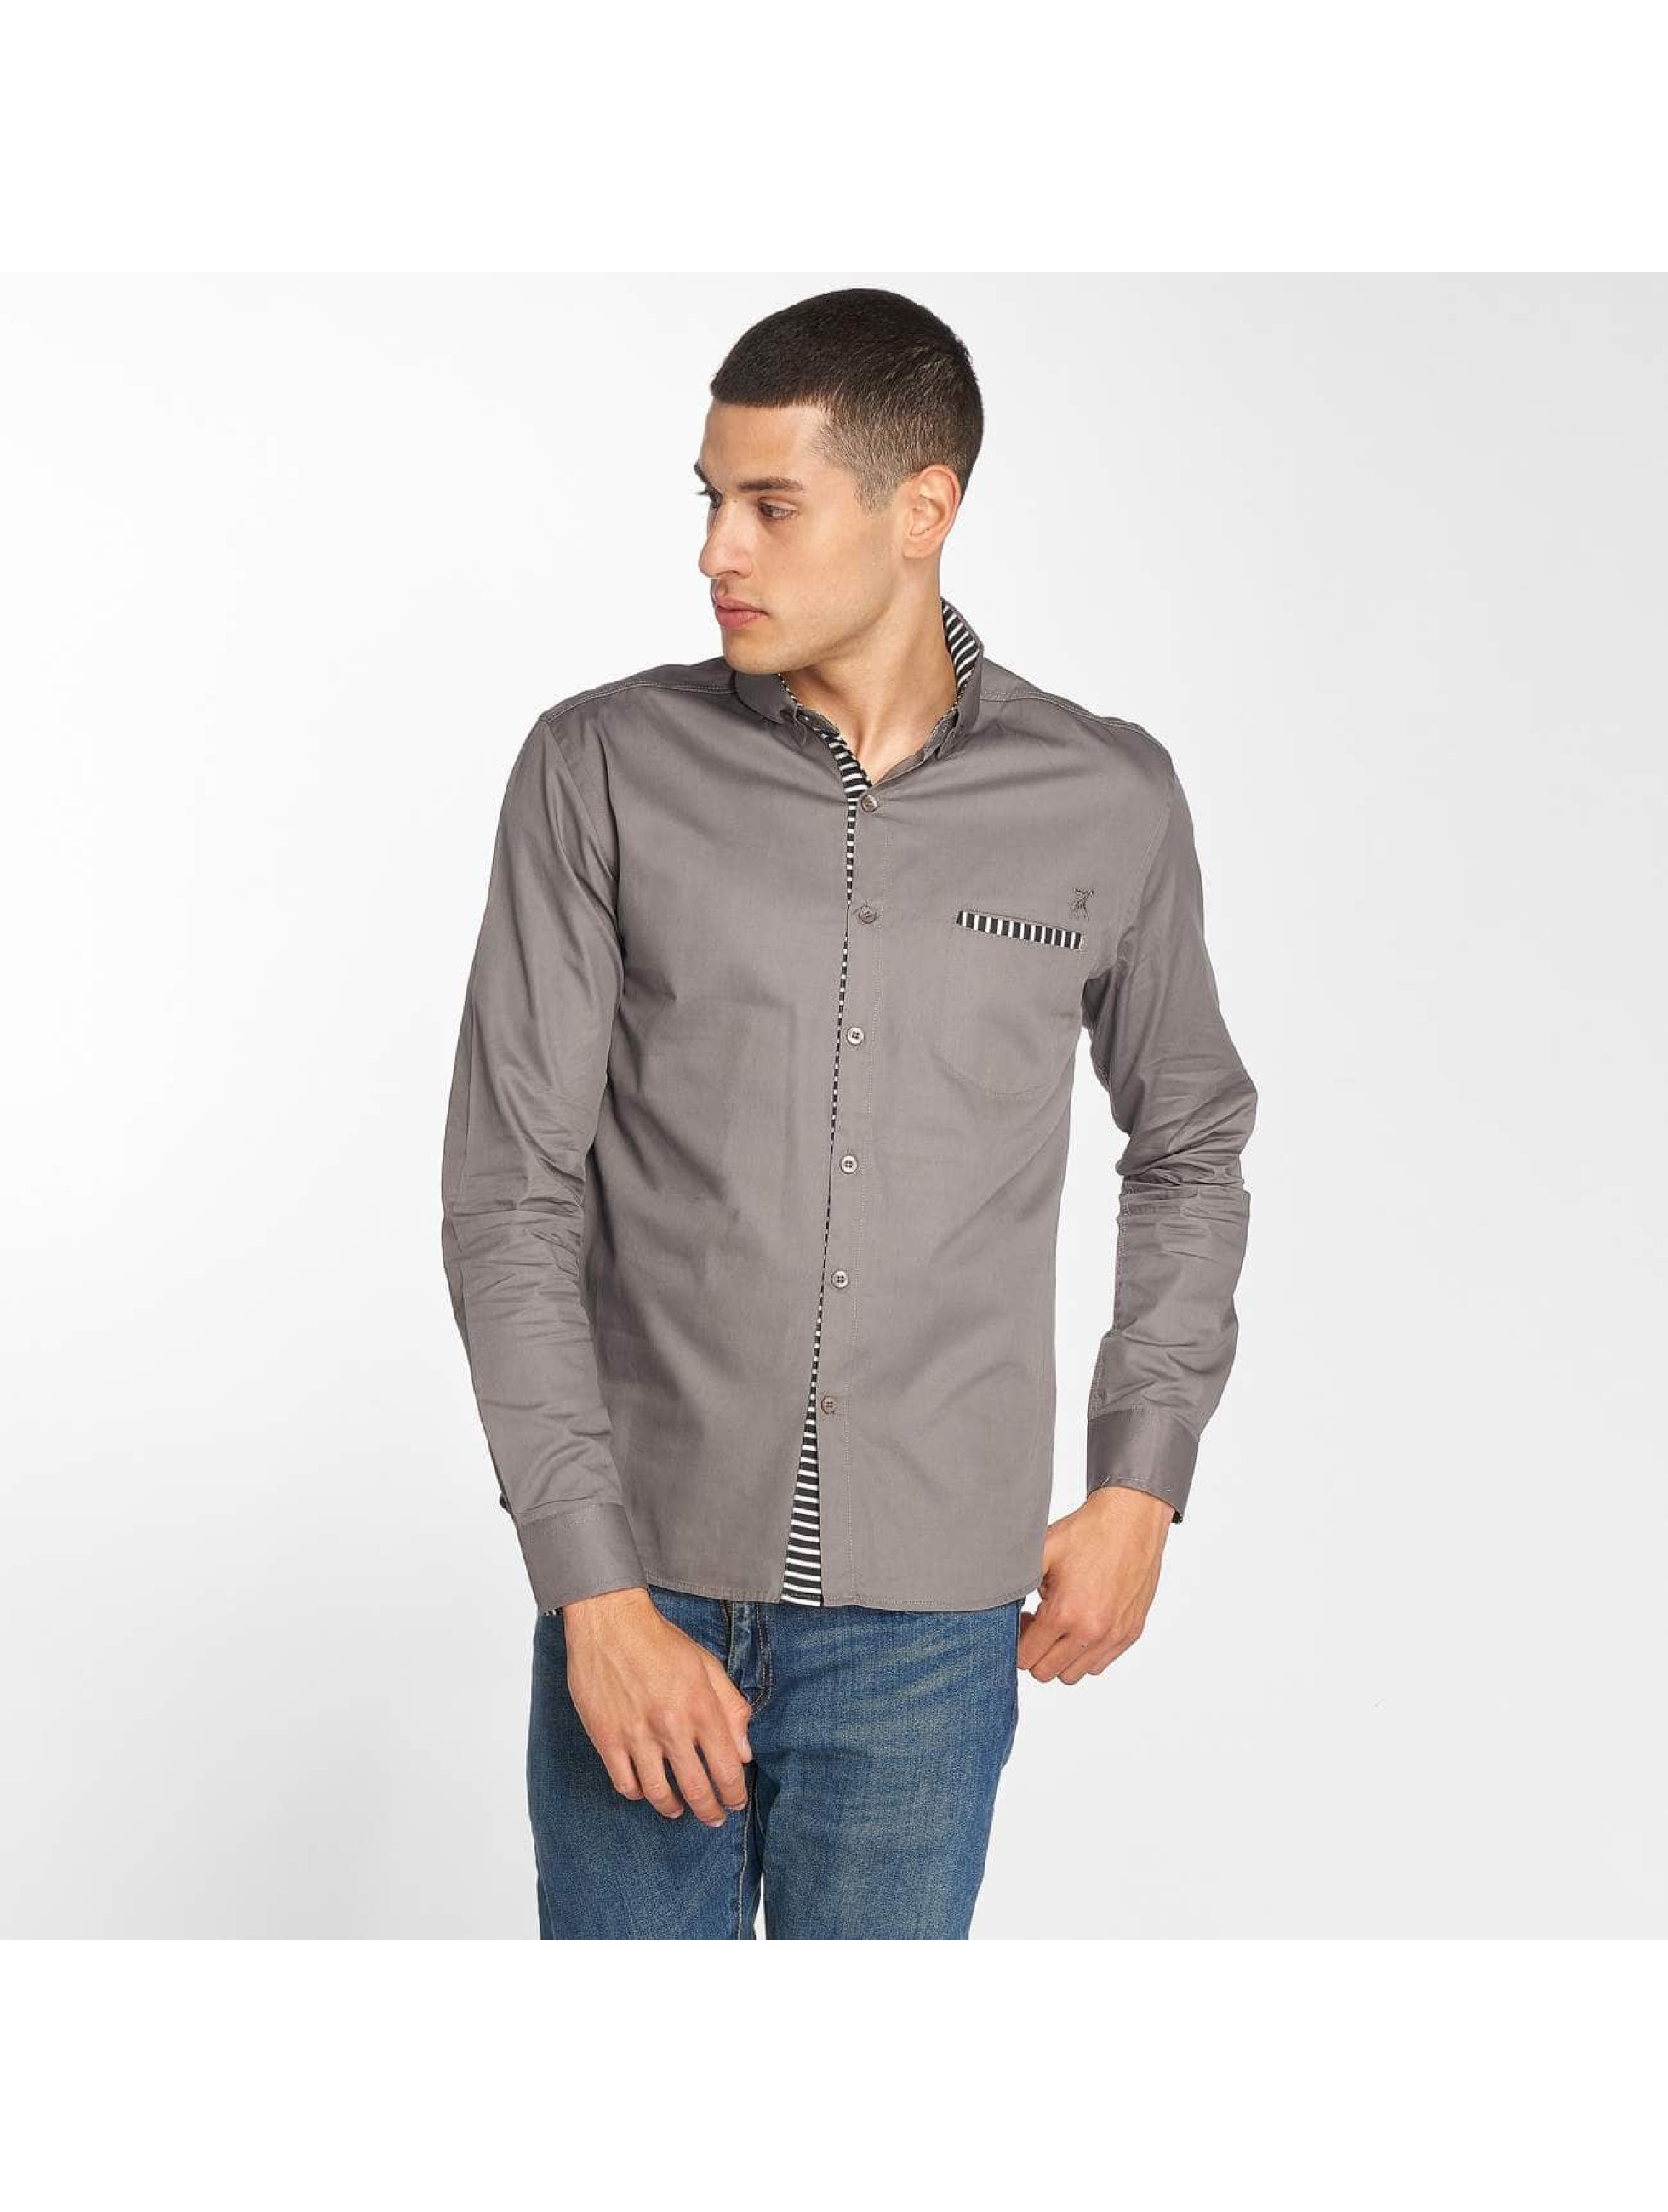 Cazzy Clang / Shirt Delian in grey L